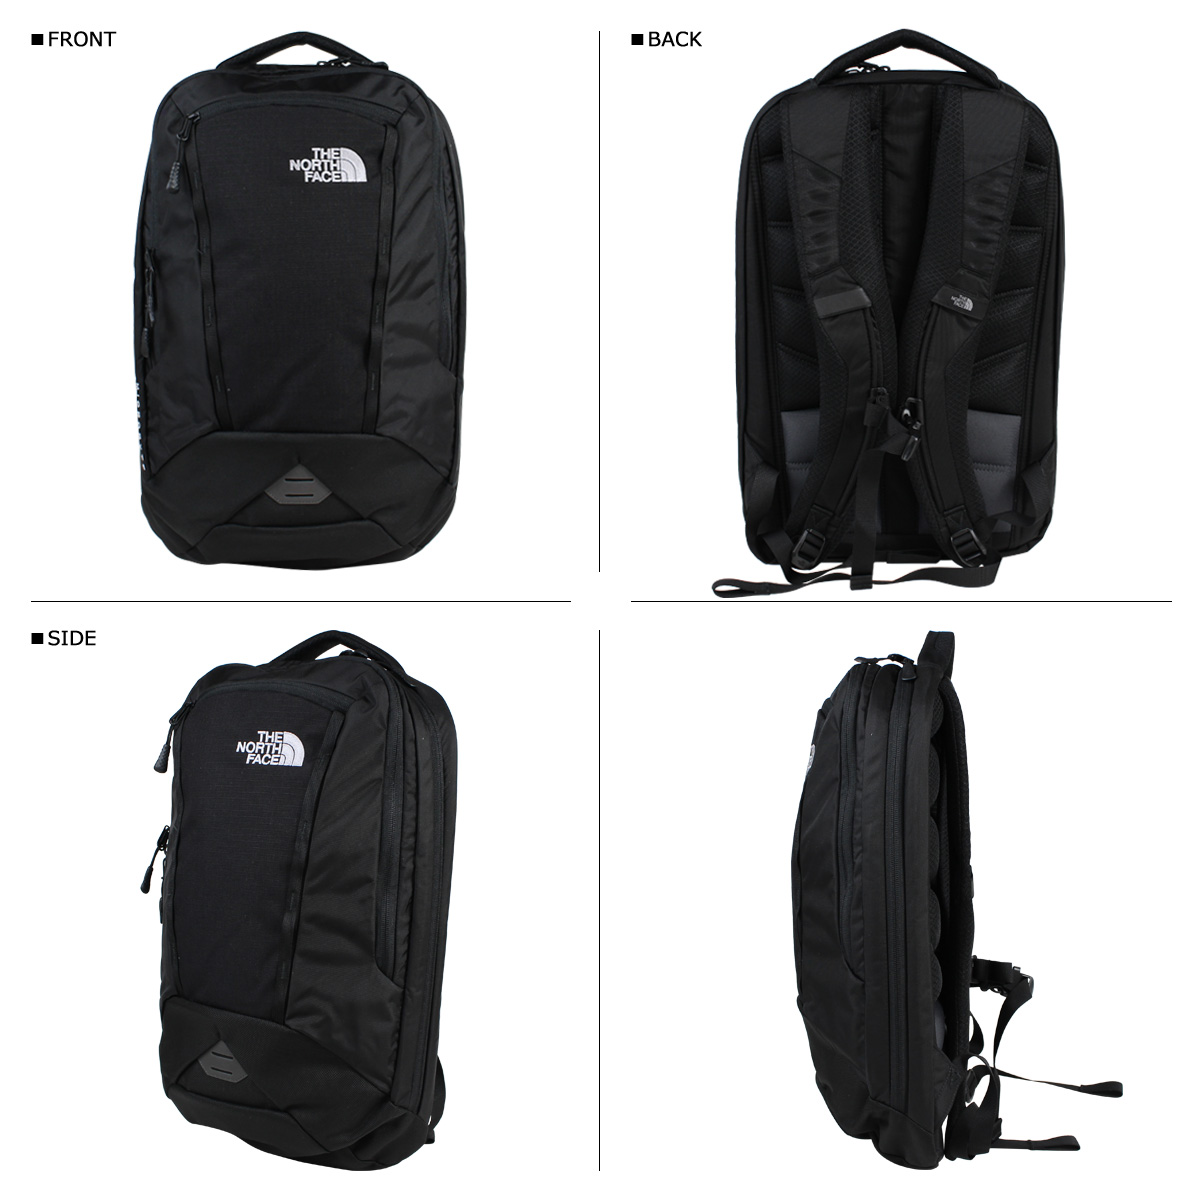 1d5aacca7 THE NORTH FACE North Face rucksack backpack MICROBYTE BACKPACK CHK5 men gap  Dis